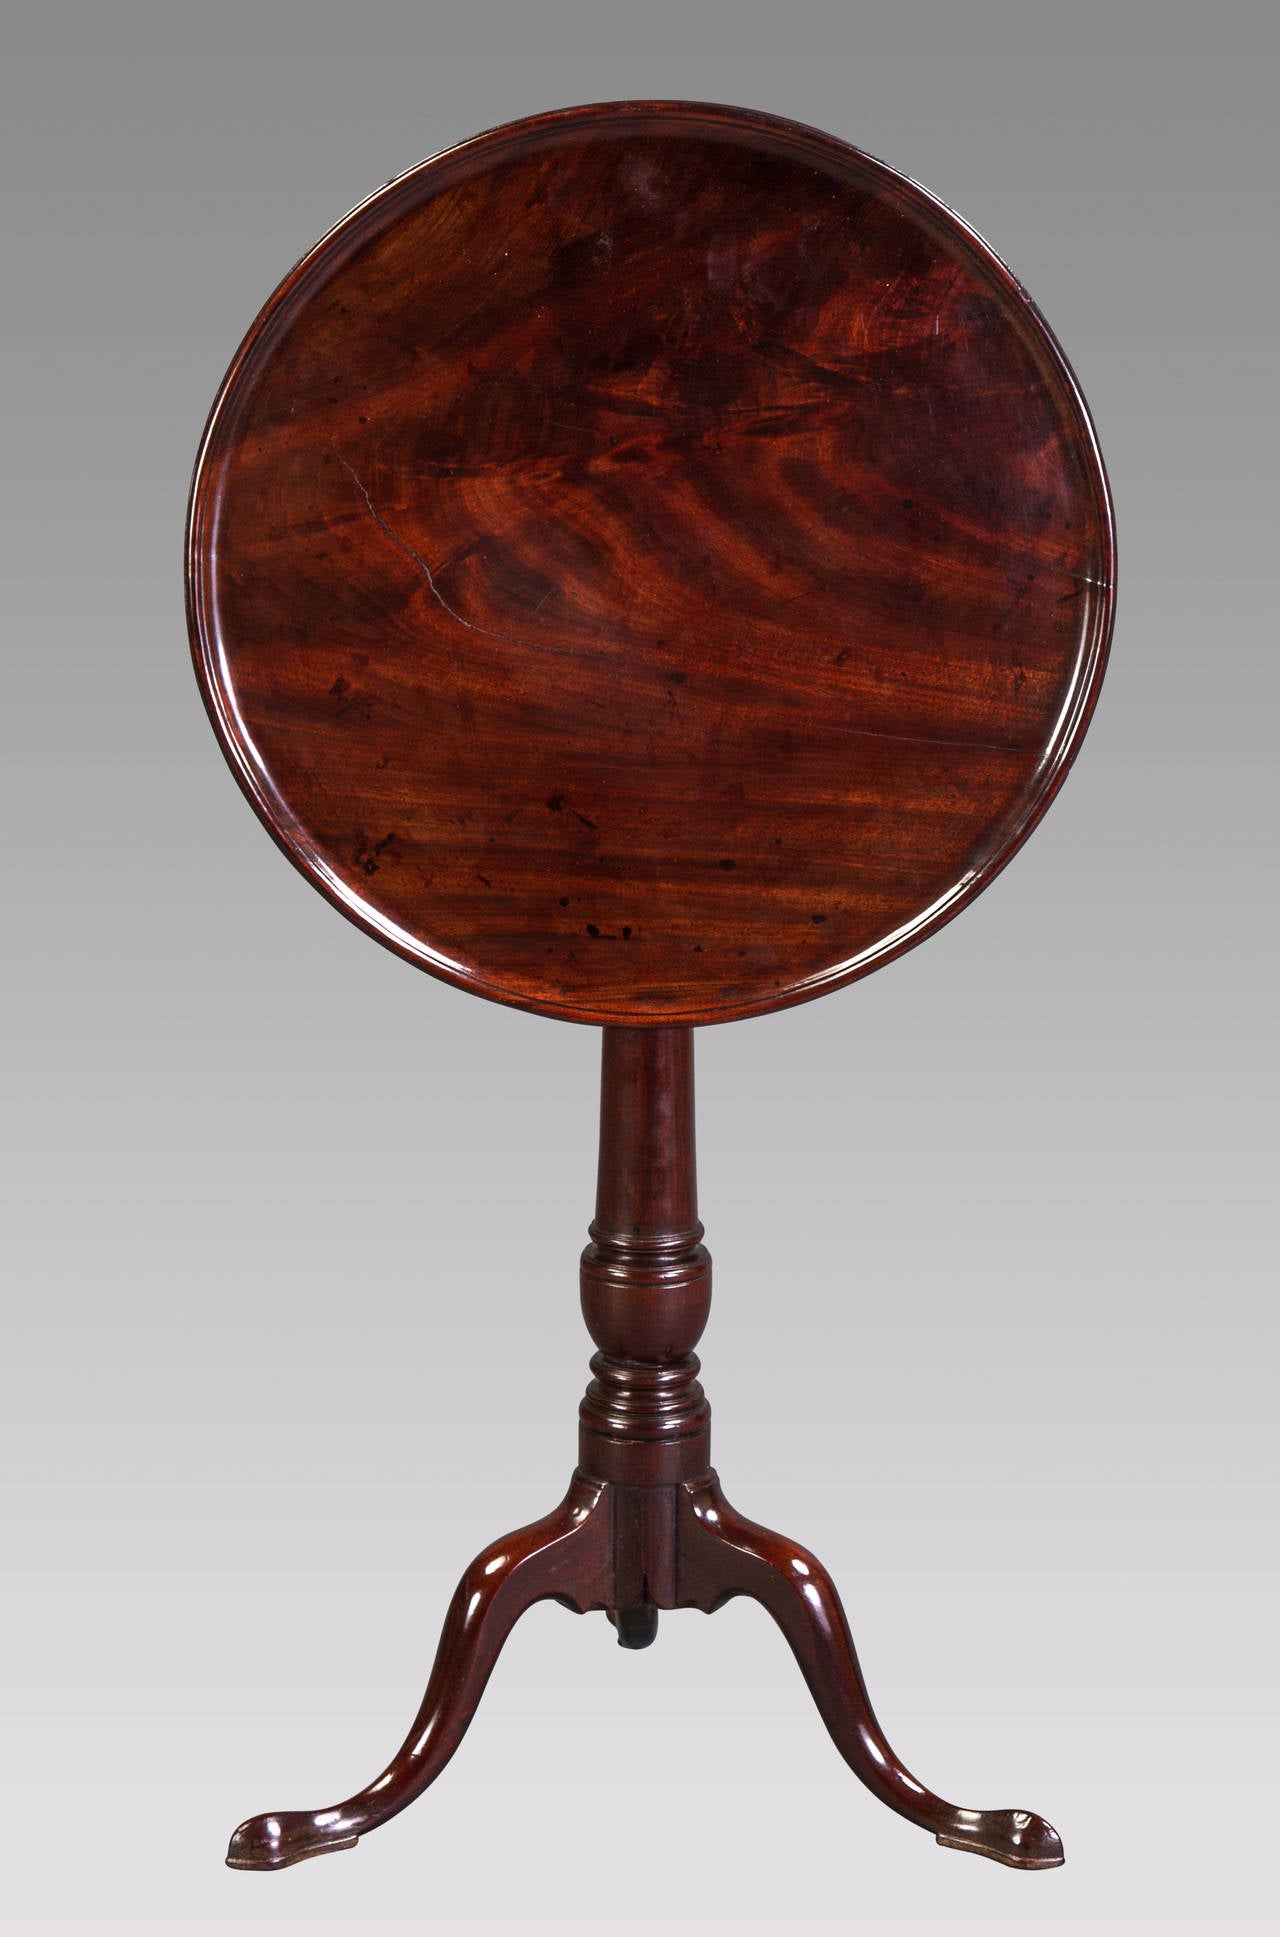 This superbly designed table from the earliest years of George II, c. 1730 is of the very finest Cuban or Santo Domingo mahogany, prized for its extreme density, tight grain and magnificent rich color and graining. A simple design, perfectly